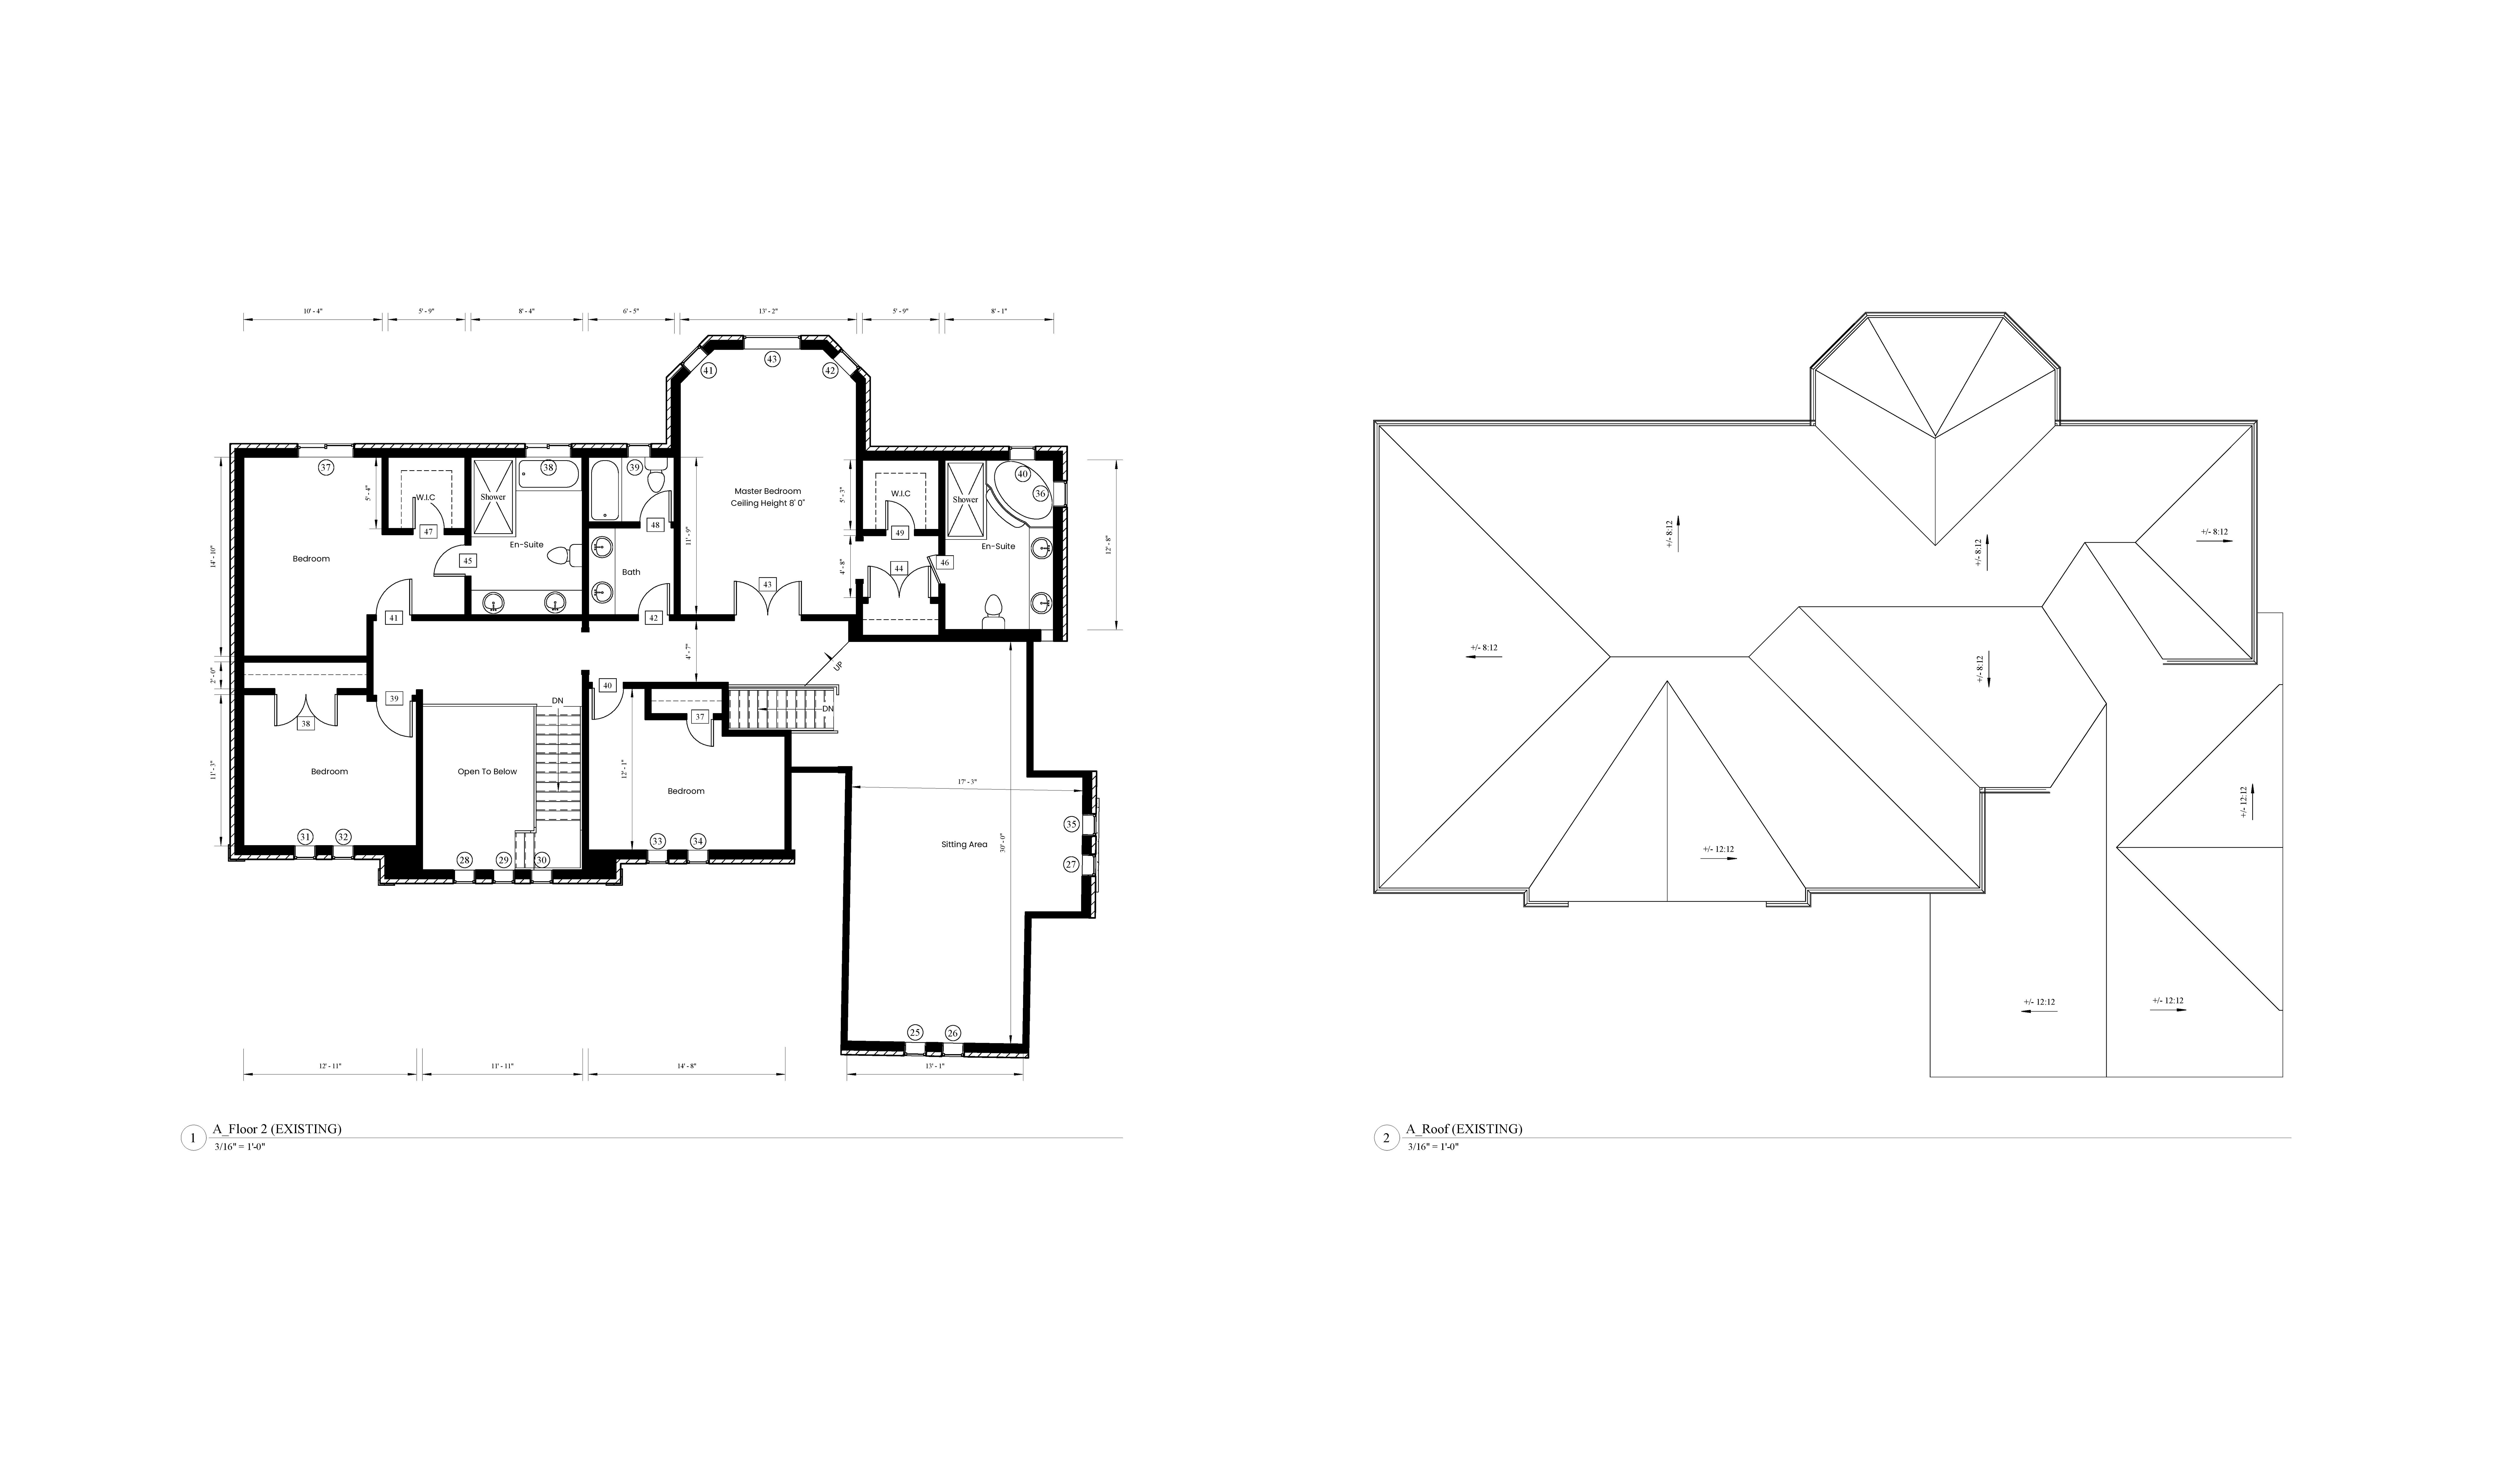 AutoCad drawings of the existing floor plans and roof plans of the house.